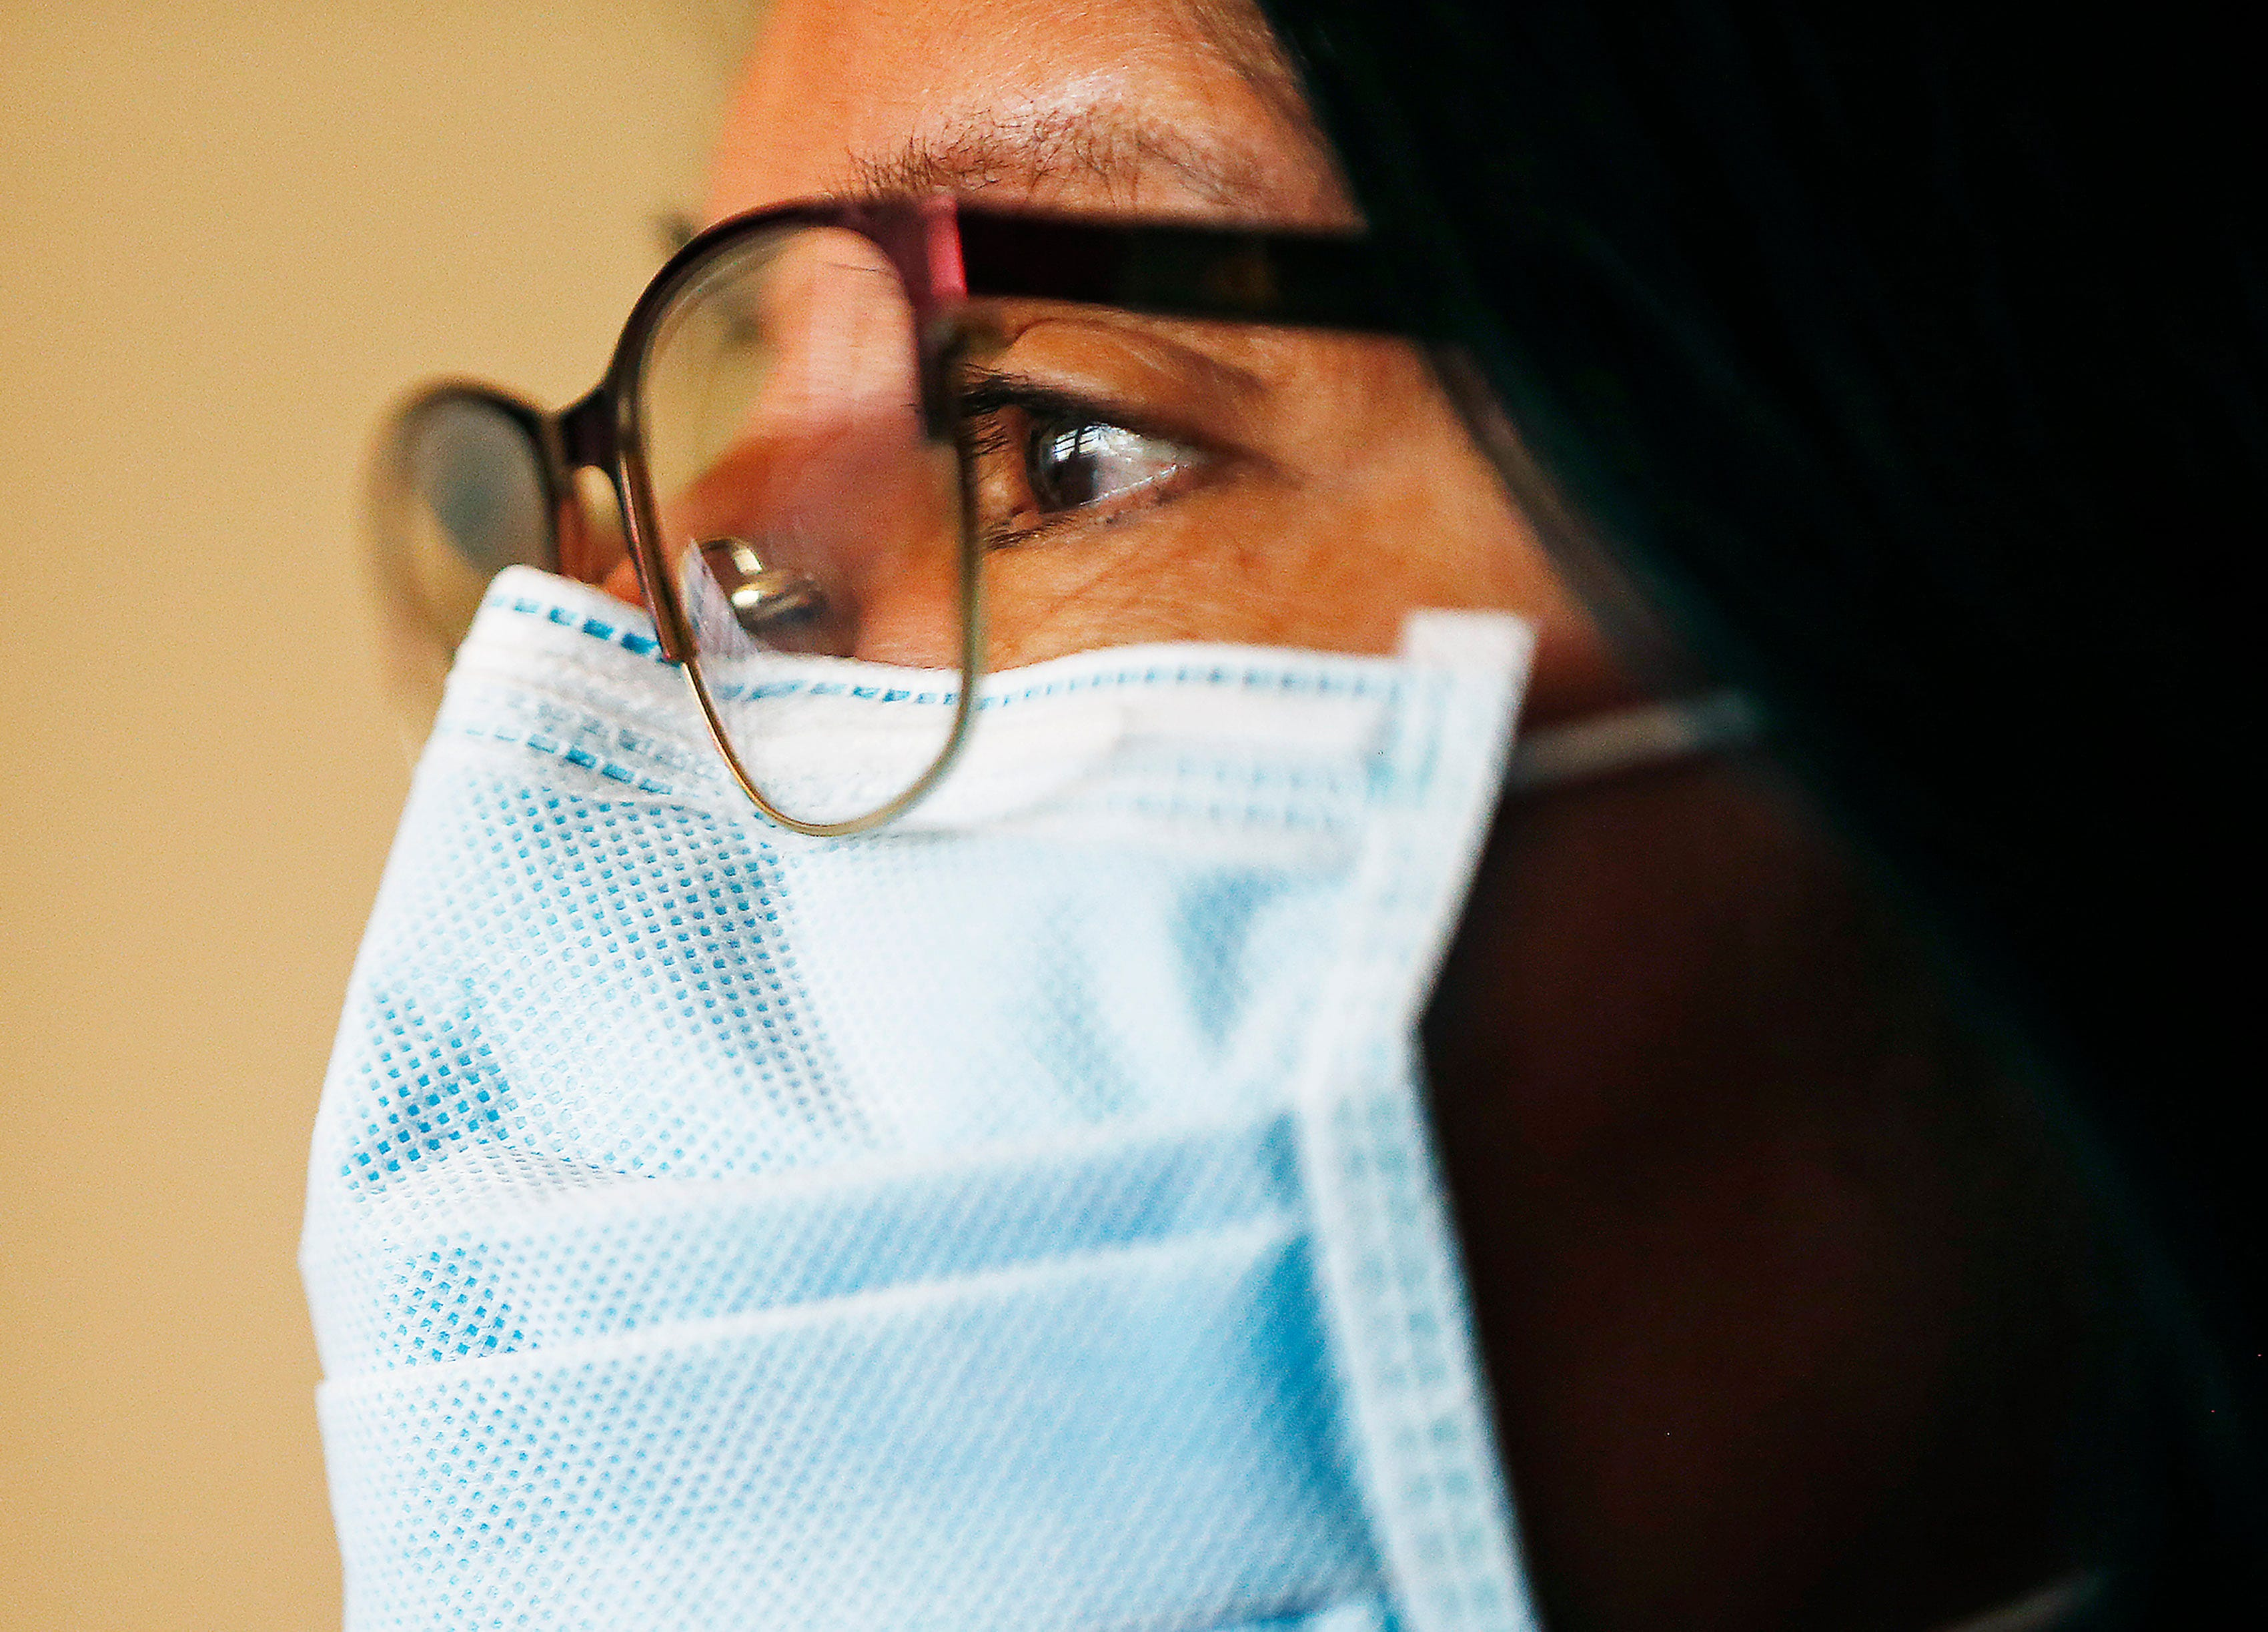 Tuba City Regional Health Care Center CEO Lynette Bonar wears a mask April 14, 2020. The hospital on Navajo Reservation in Arizona has seen a spike in COVID-19 cases. (Photo: Michael Chow/The Republic)